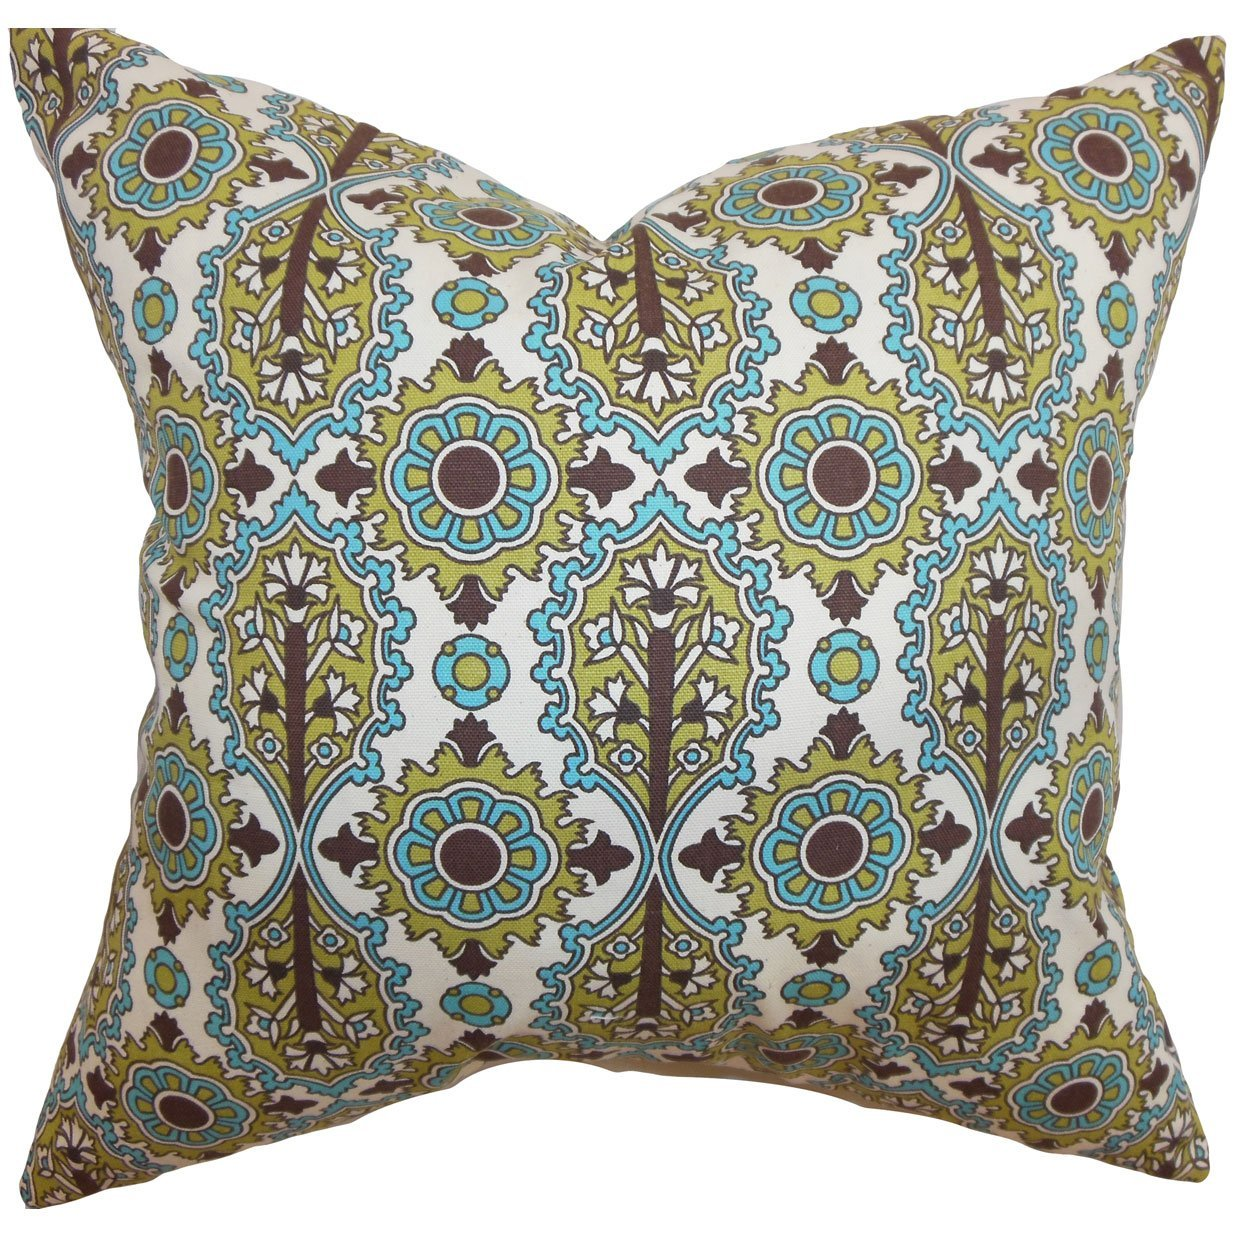 Hardeman Throw Pillow Cover